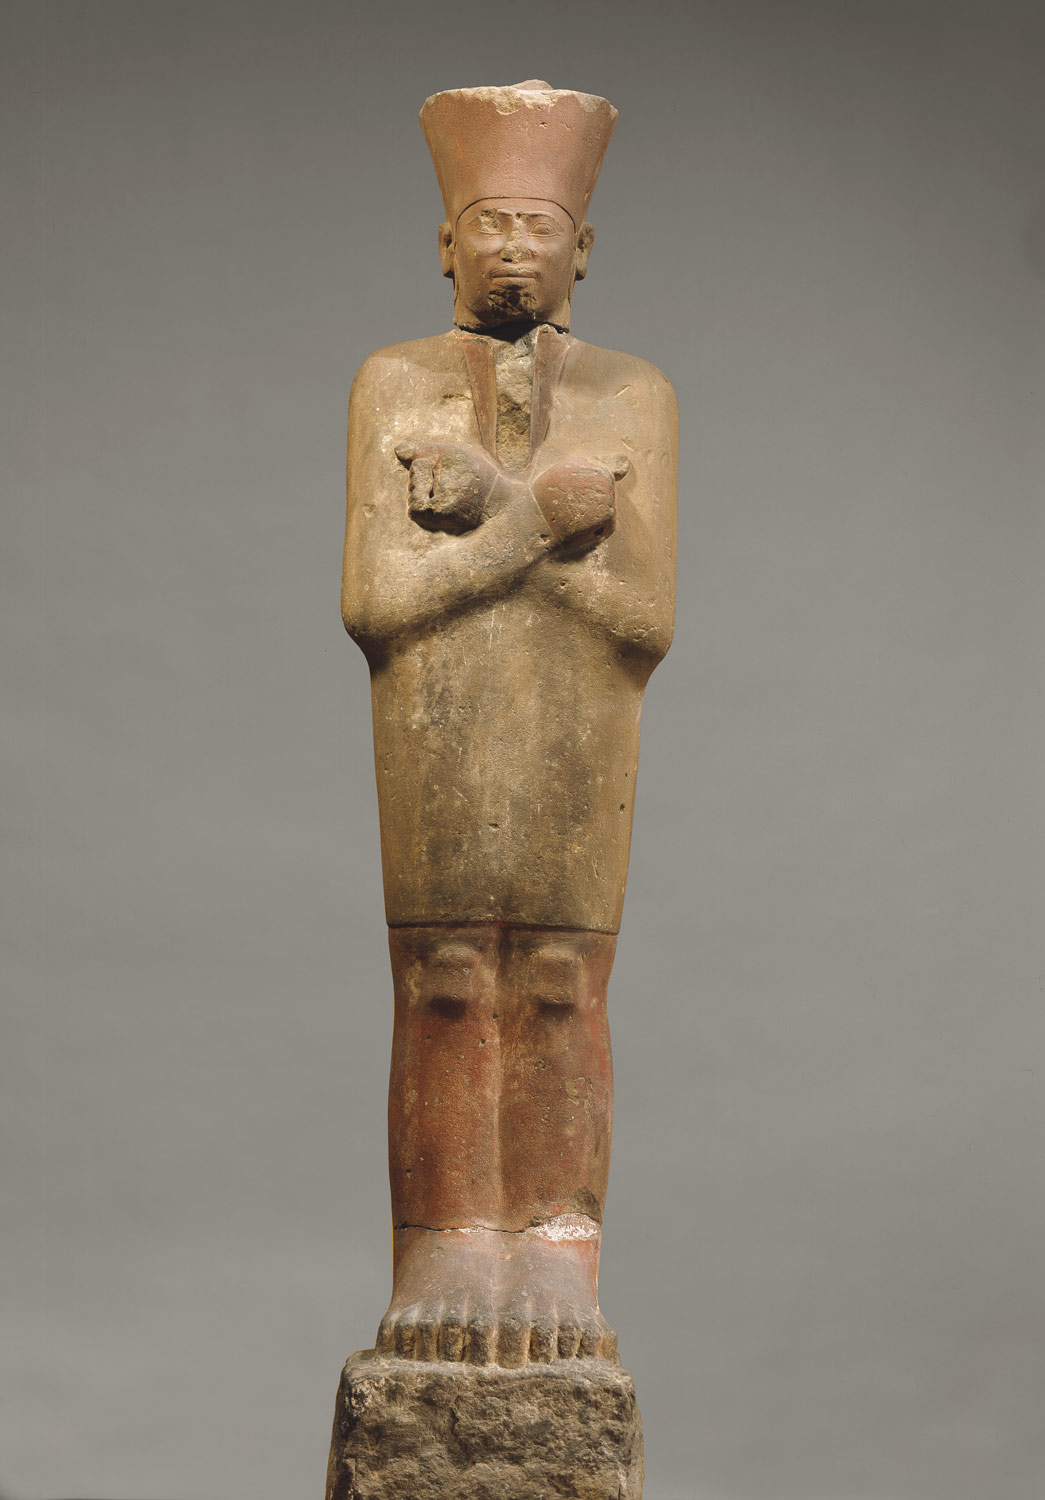 Statue of Nebhepetre Mentuhotep II in the Jubilee Garment